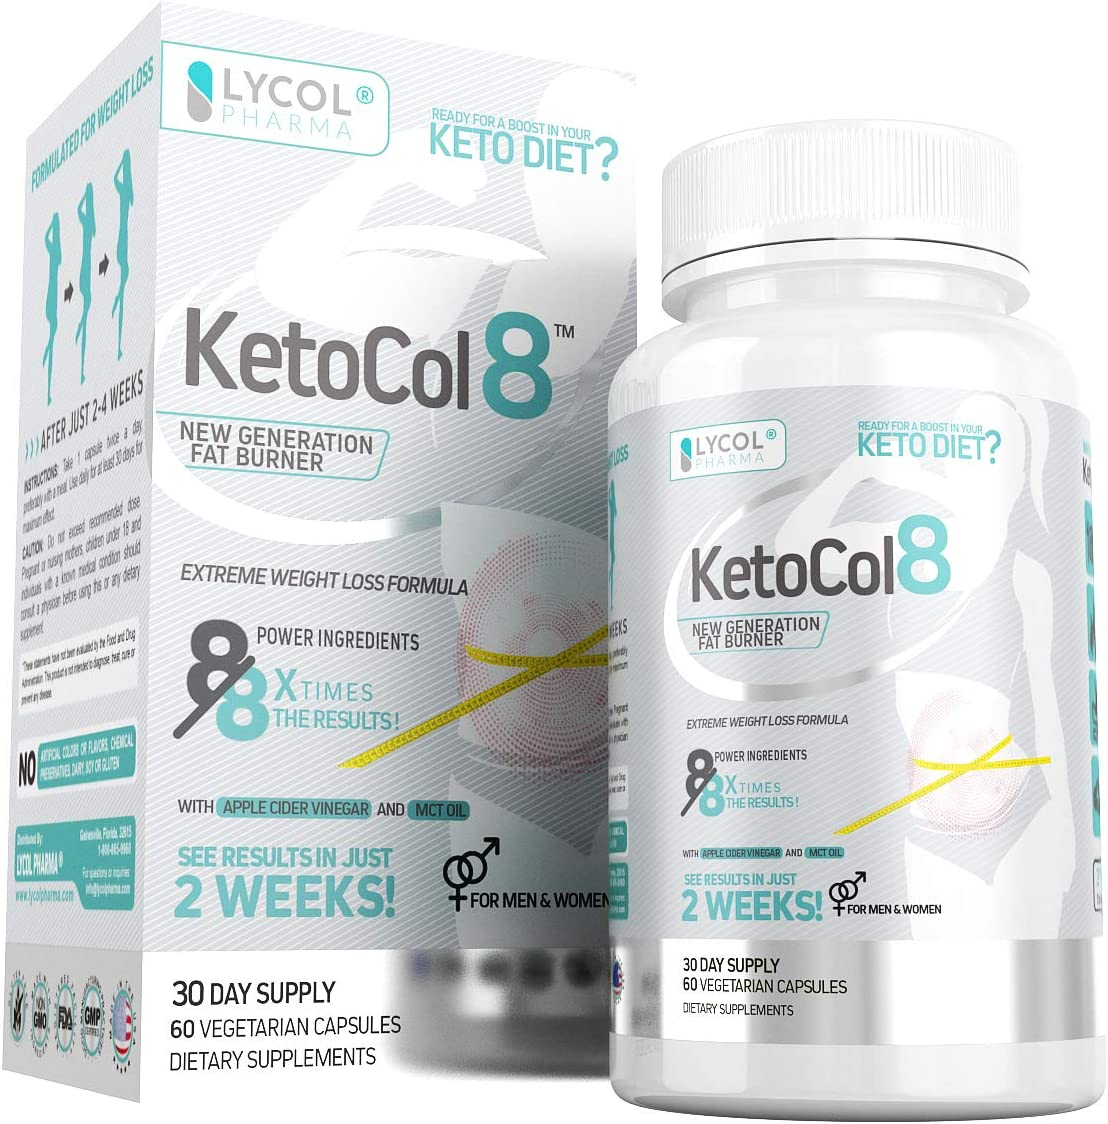 KetoCol8 Keto Pills with Apple Cider Vinegar Capsules BHB Salts for Women and Men 15 Billion CFU Ultimate Keto Diet Supplement Triggers Ketosis Boost BHB Production and Utilizes Fat for Energy